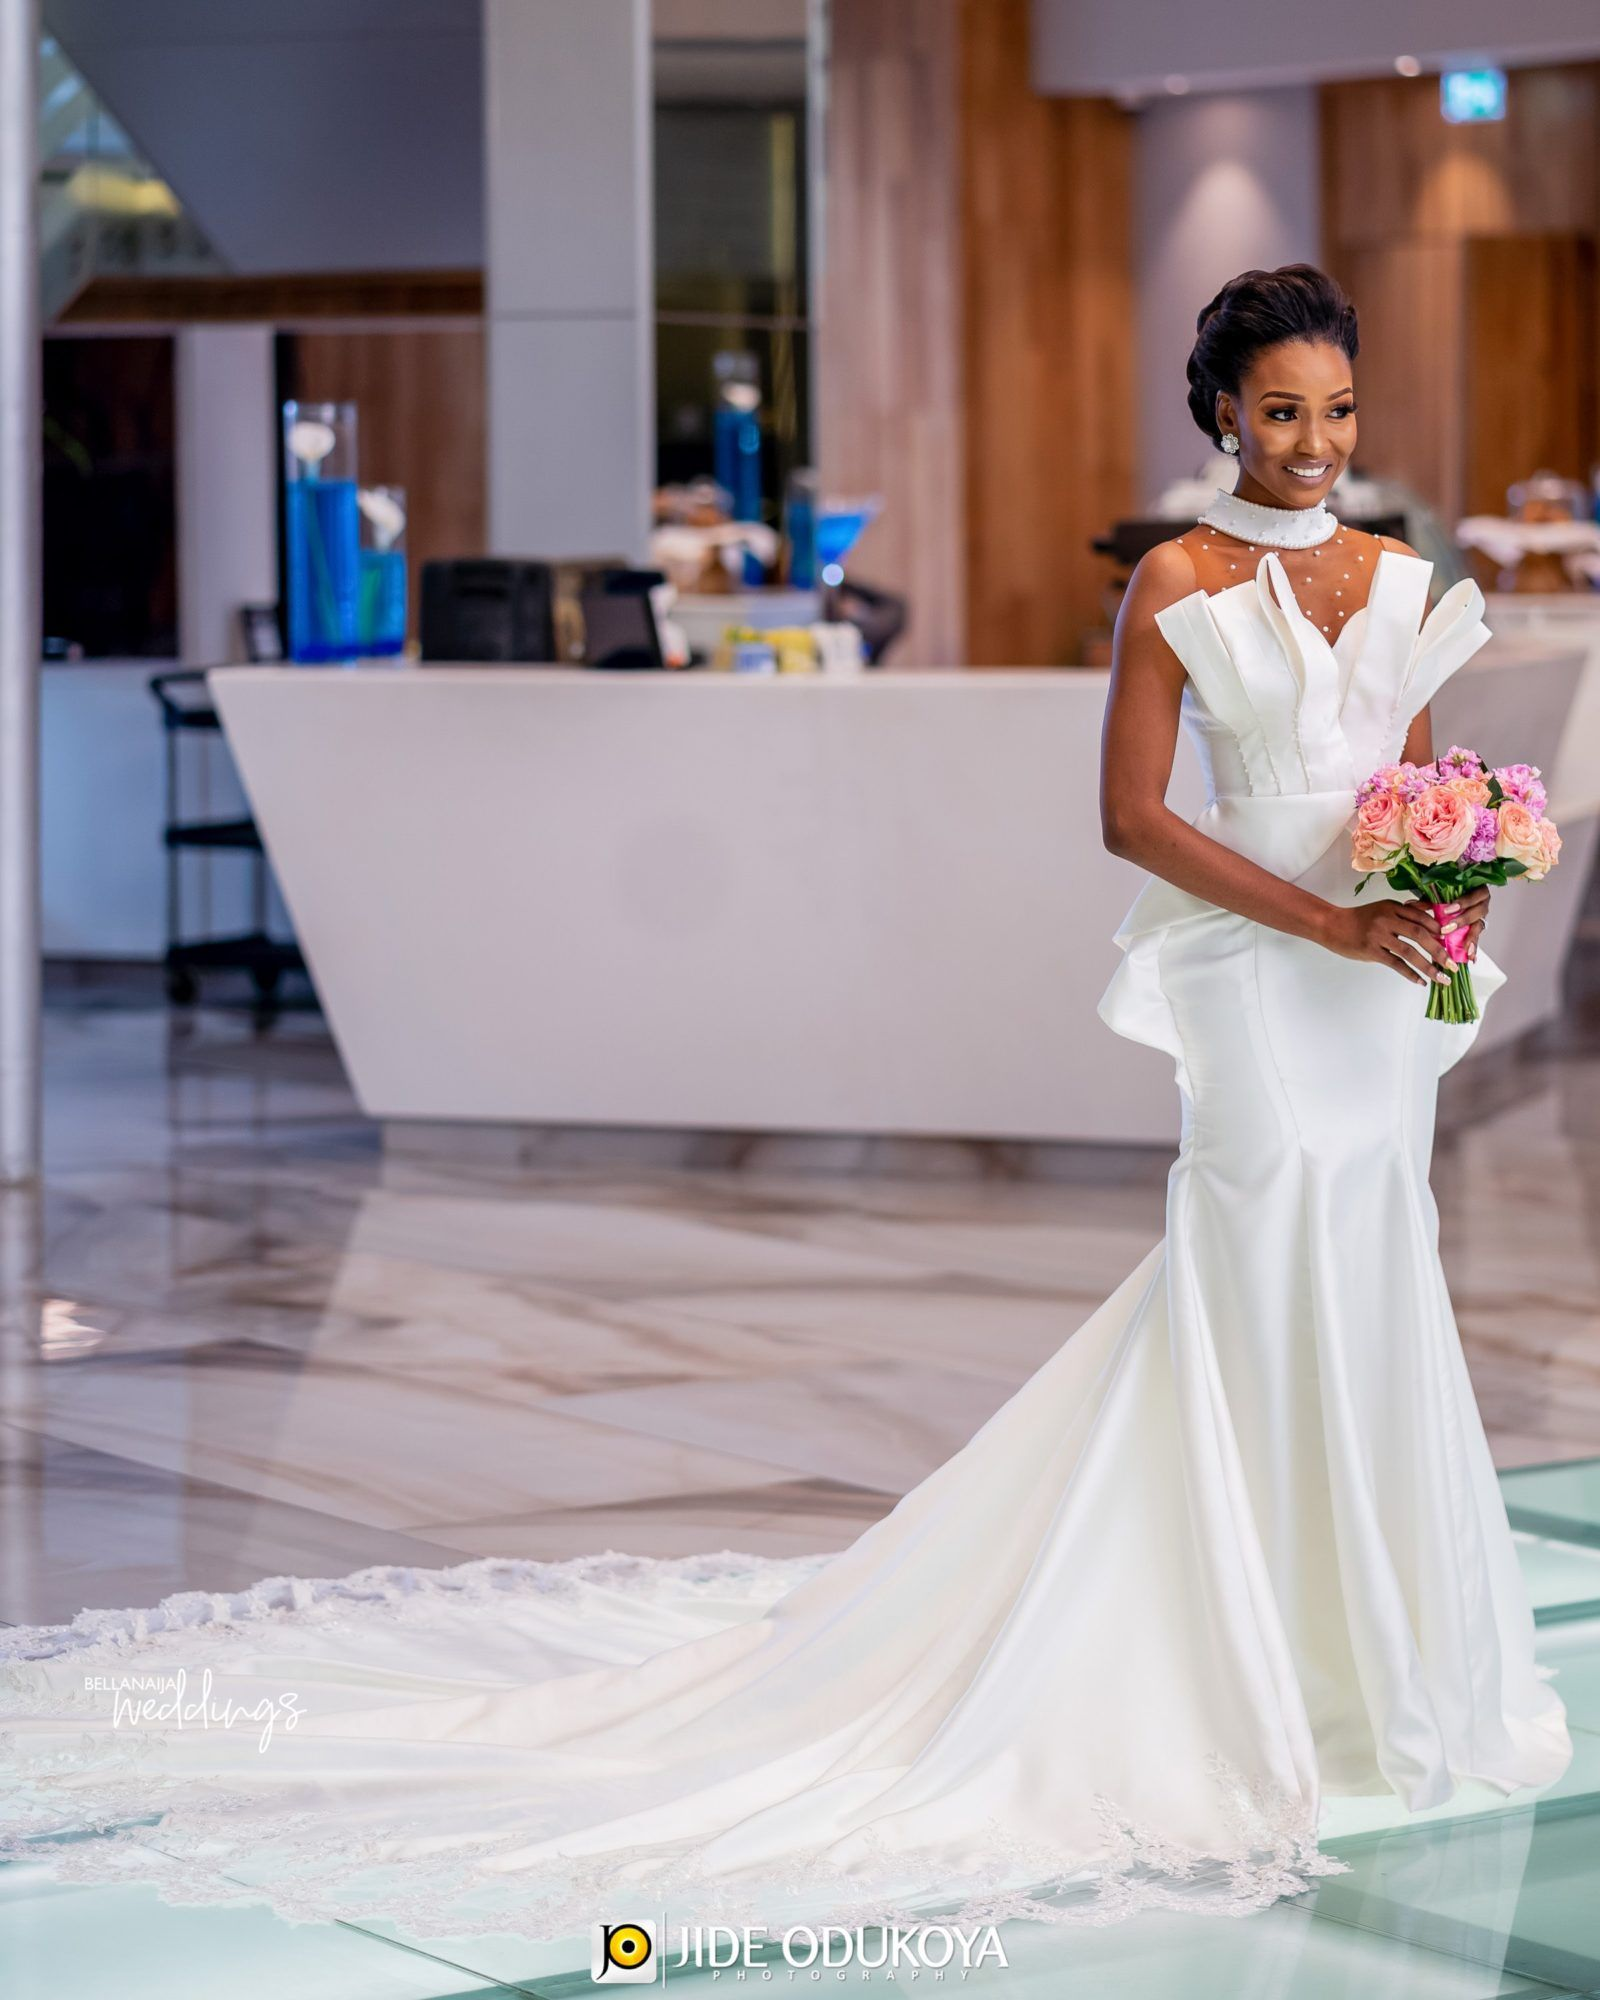 This Top Nigerian Model Planned Her Entire Wedding It Was Flawless Tbanks18 Bellanaija Weddings Wedding Bella Naija Weddings African Wedding